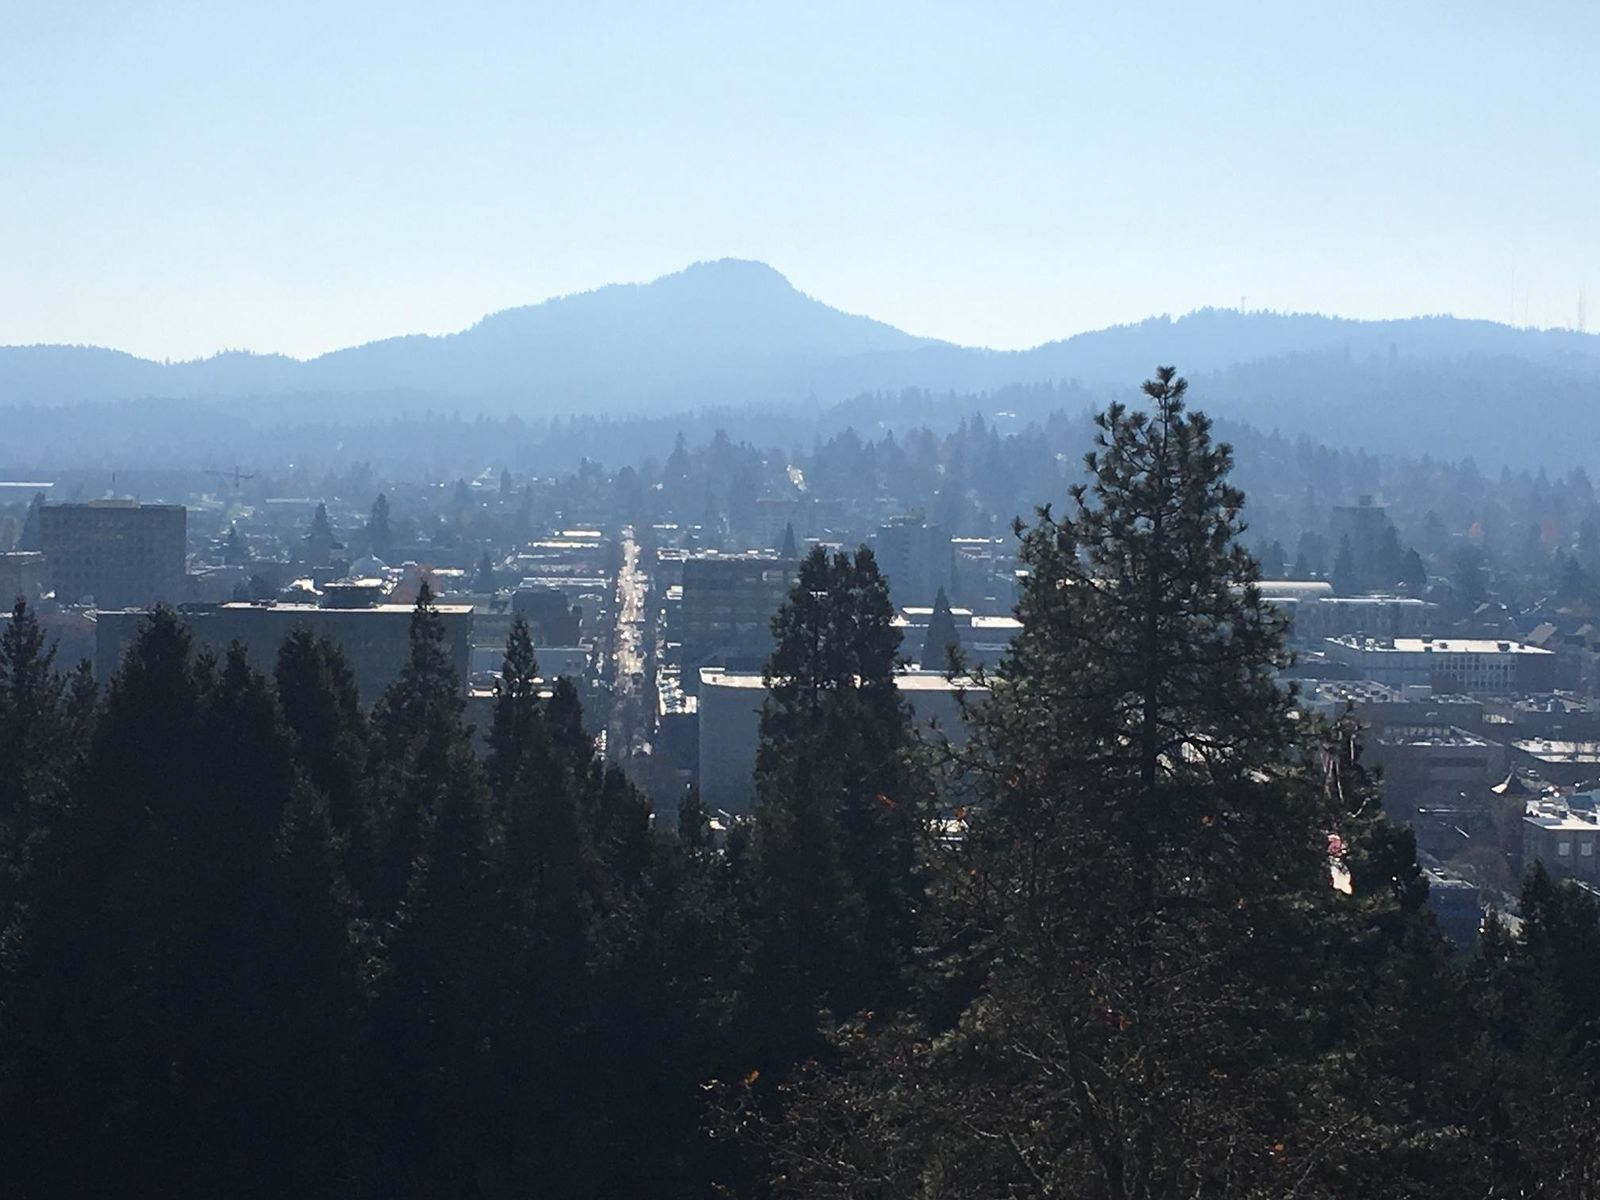 New estimate shows Eugene's population has risen to above 171,000 for first time ever (SBG)